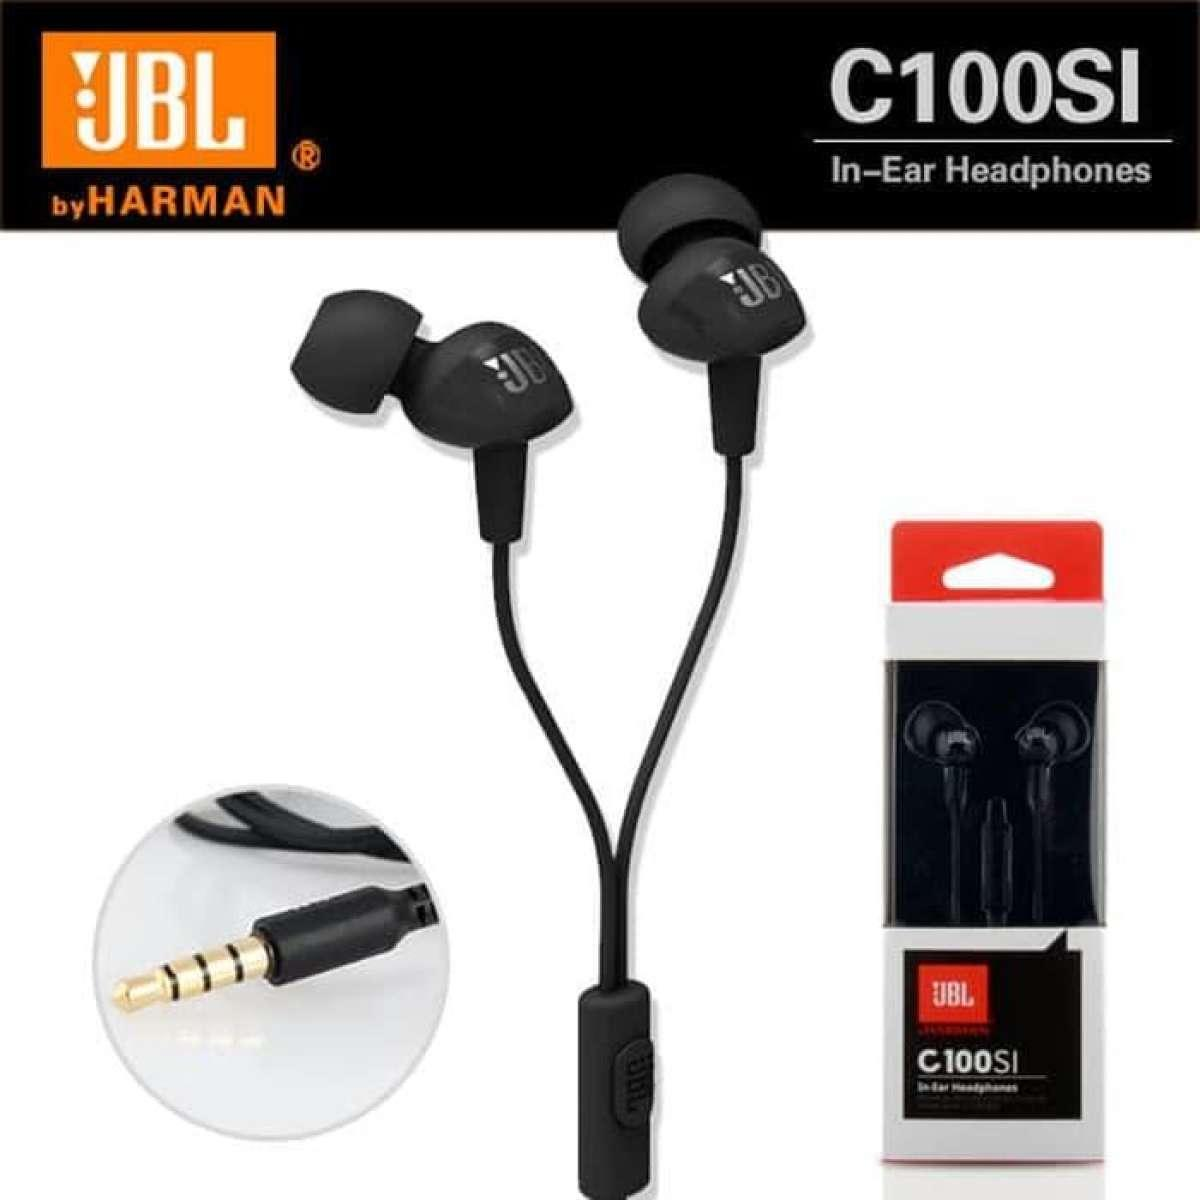 Headset JBL C100SI ORIGINAL Special One In-Ear Headphones with Mic